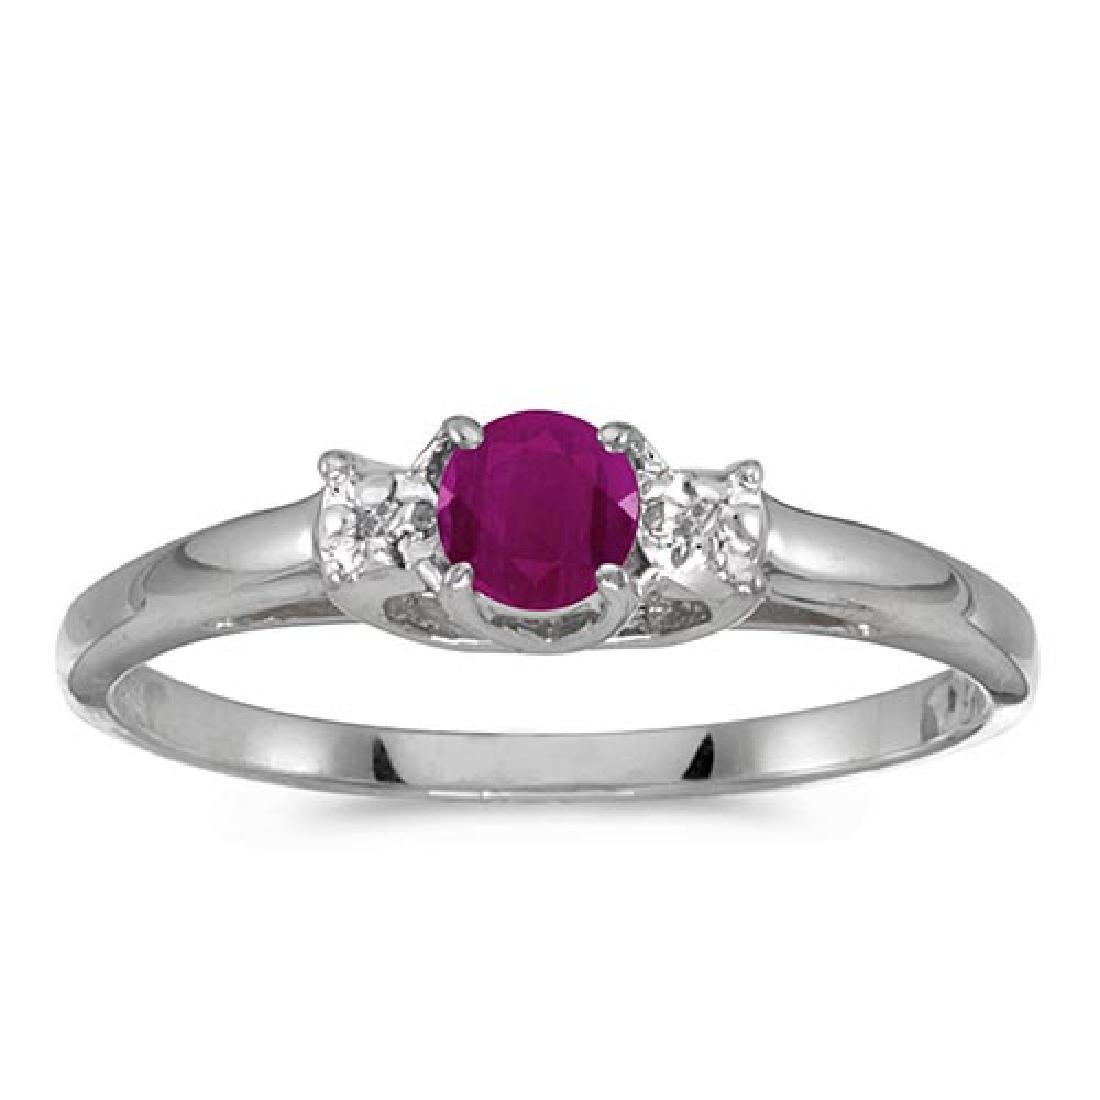 Certified 10k White Gold Round Ruby And Diamond Ring 0.